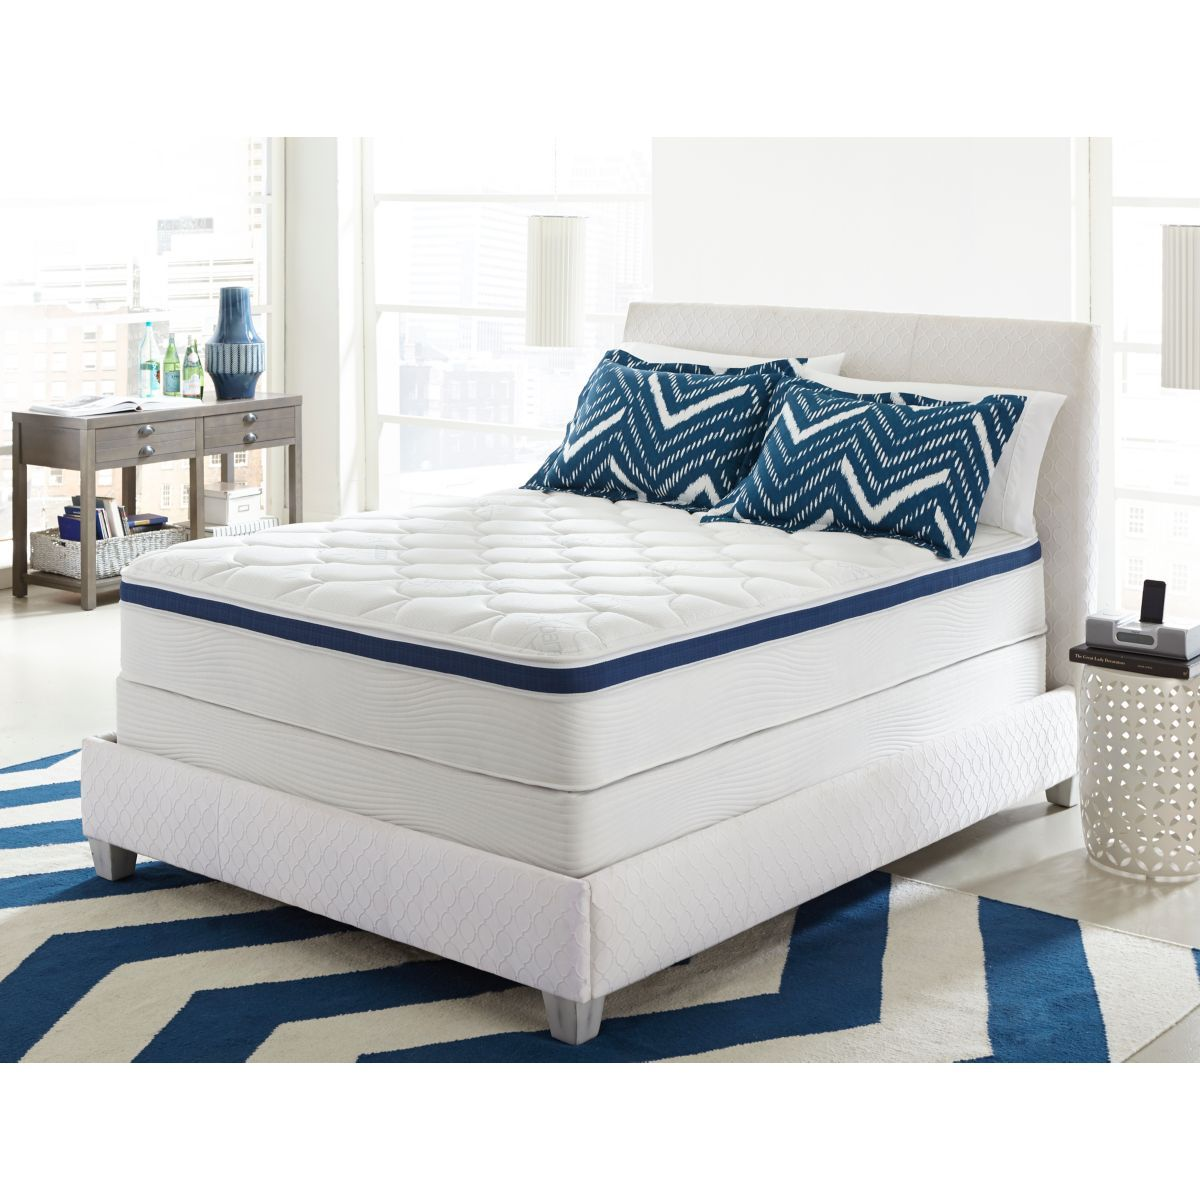 Catalog DirectBuy® (With images) Adjustable beds